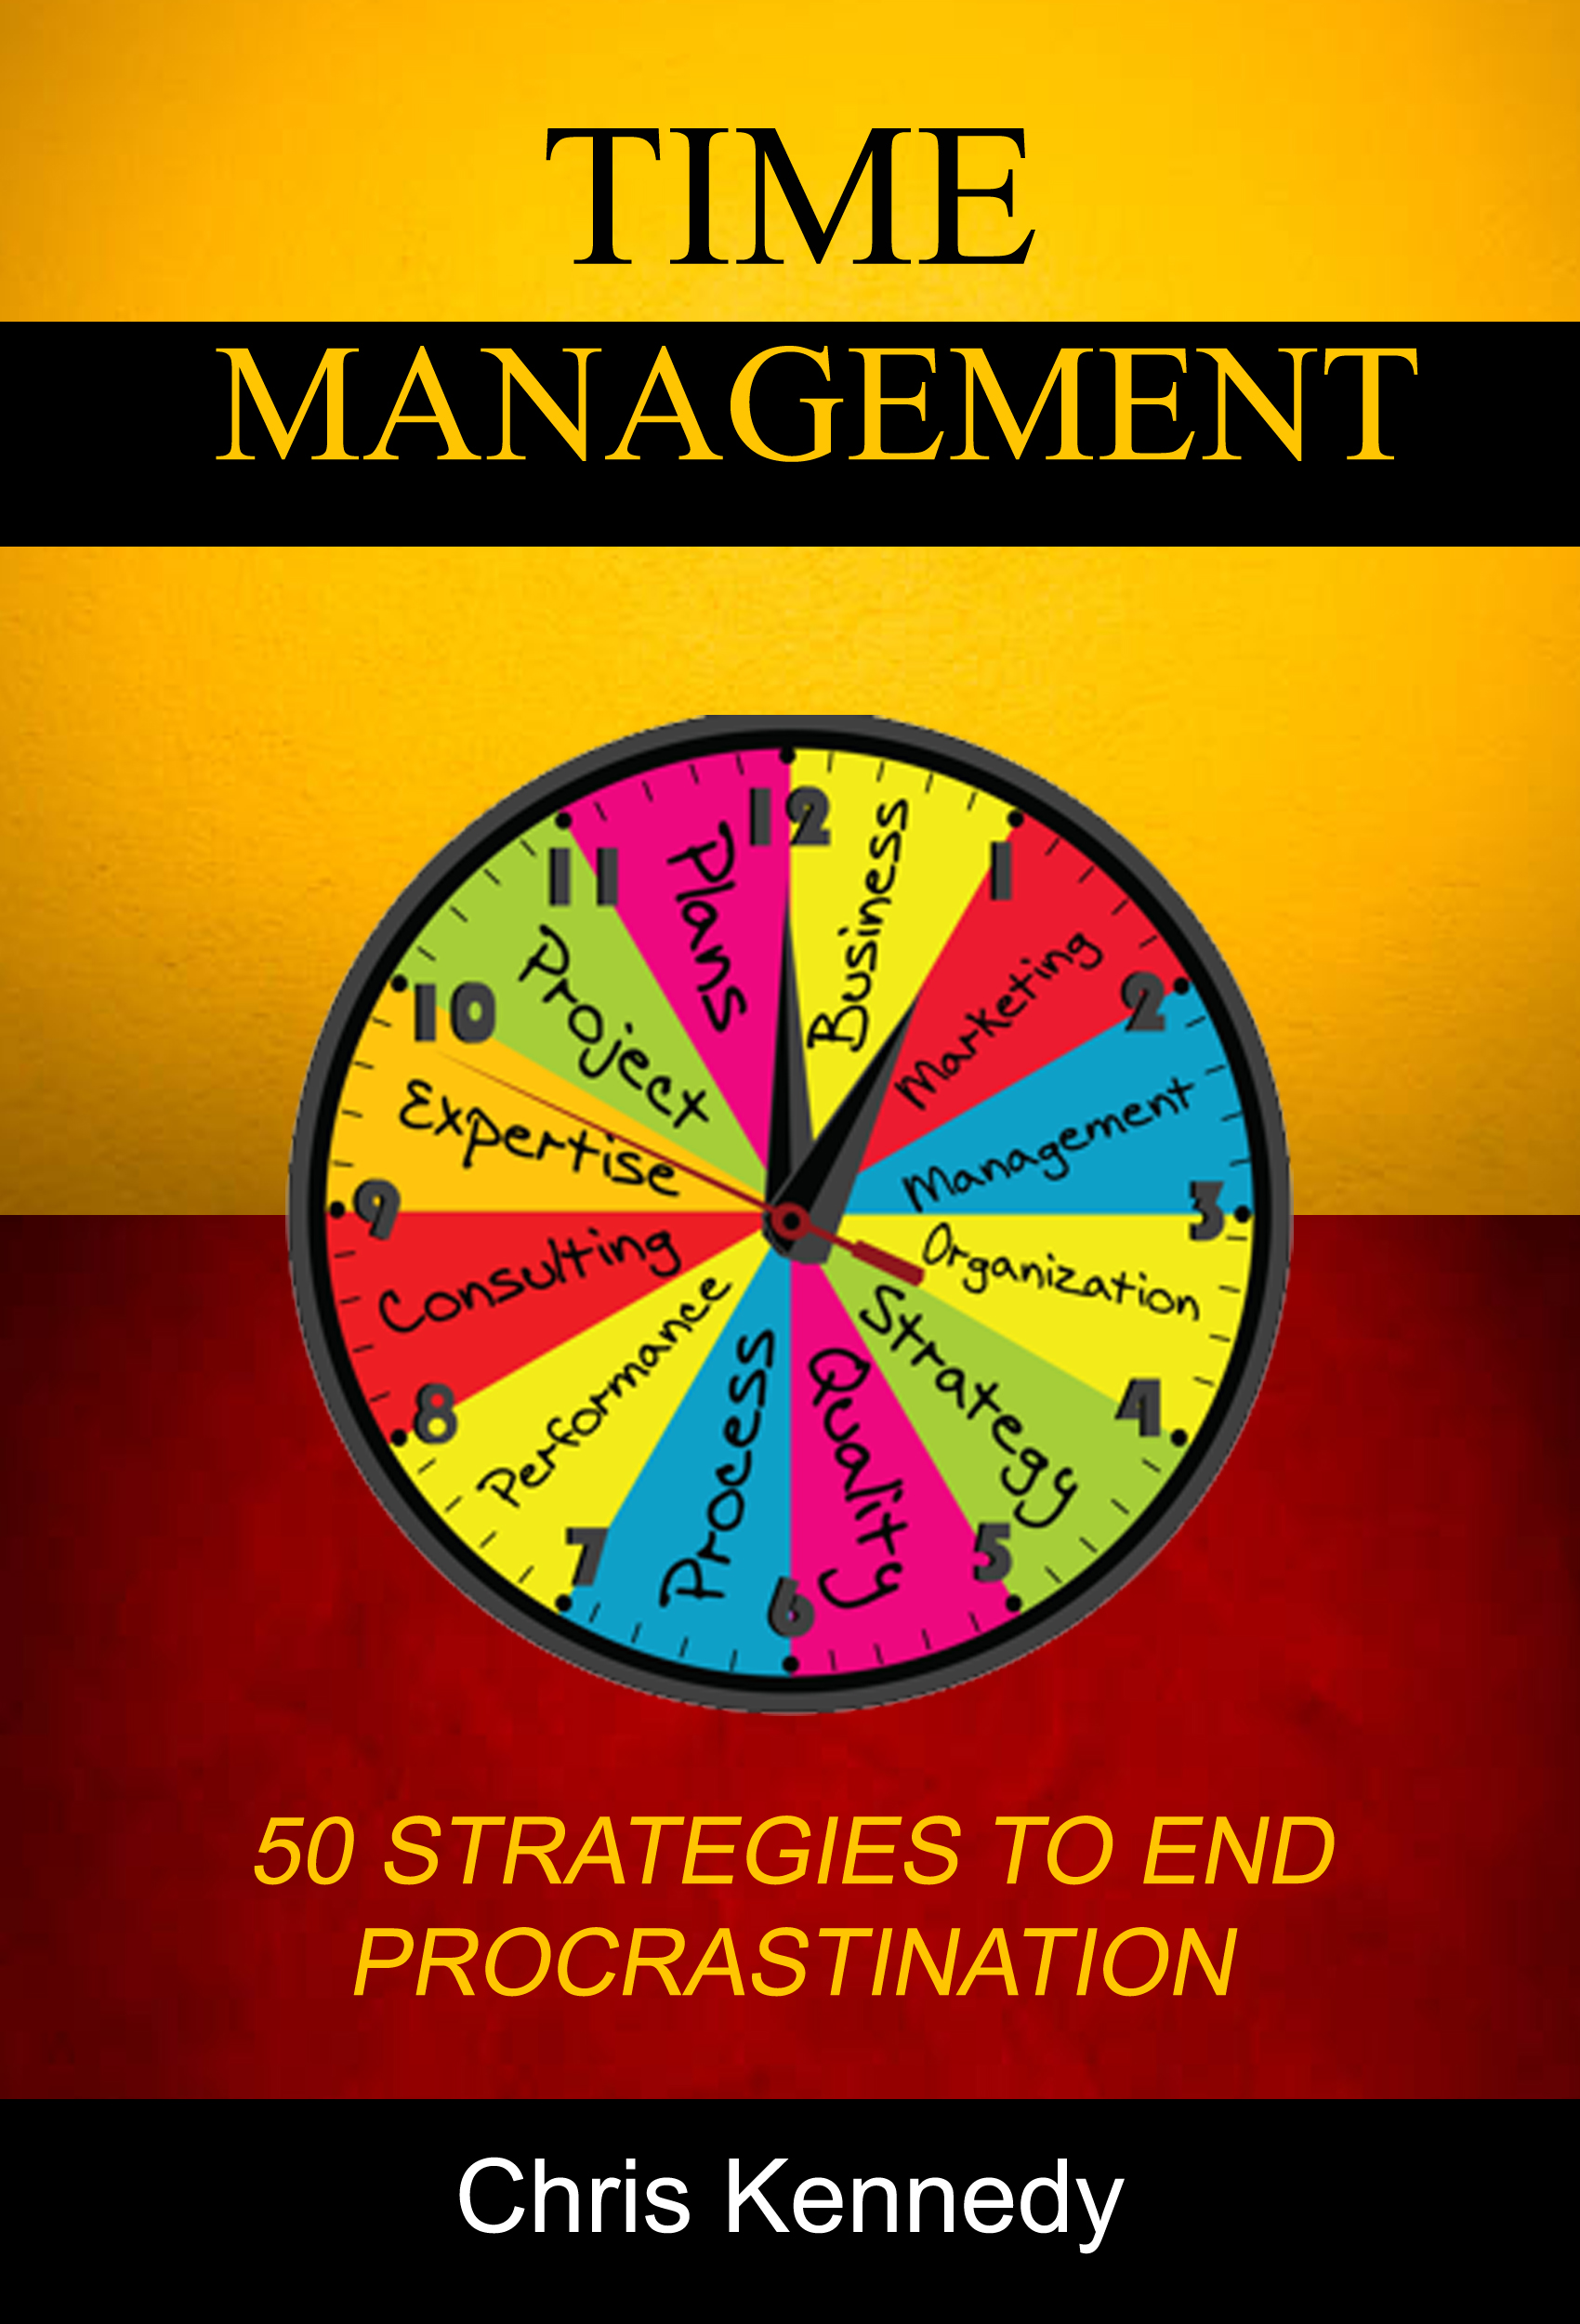 Time management: 50 strategies to end procrastination